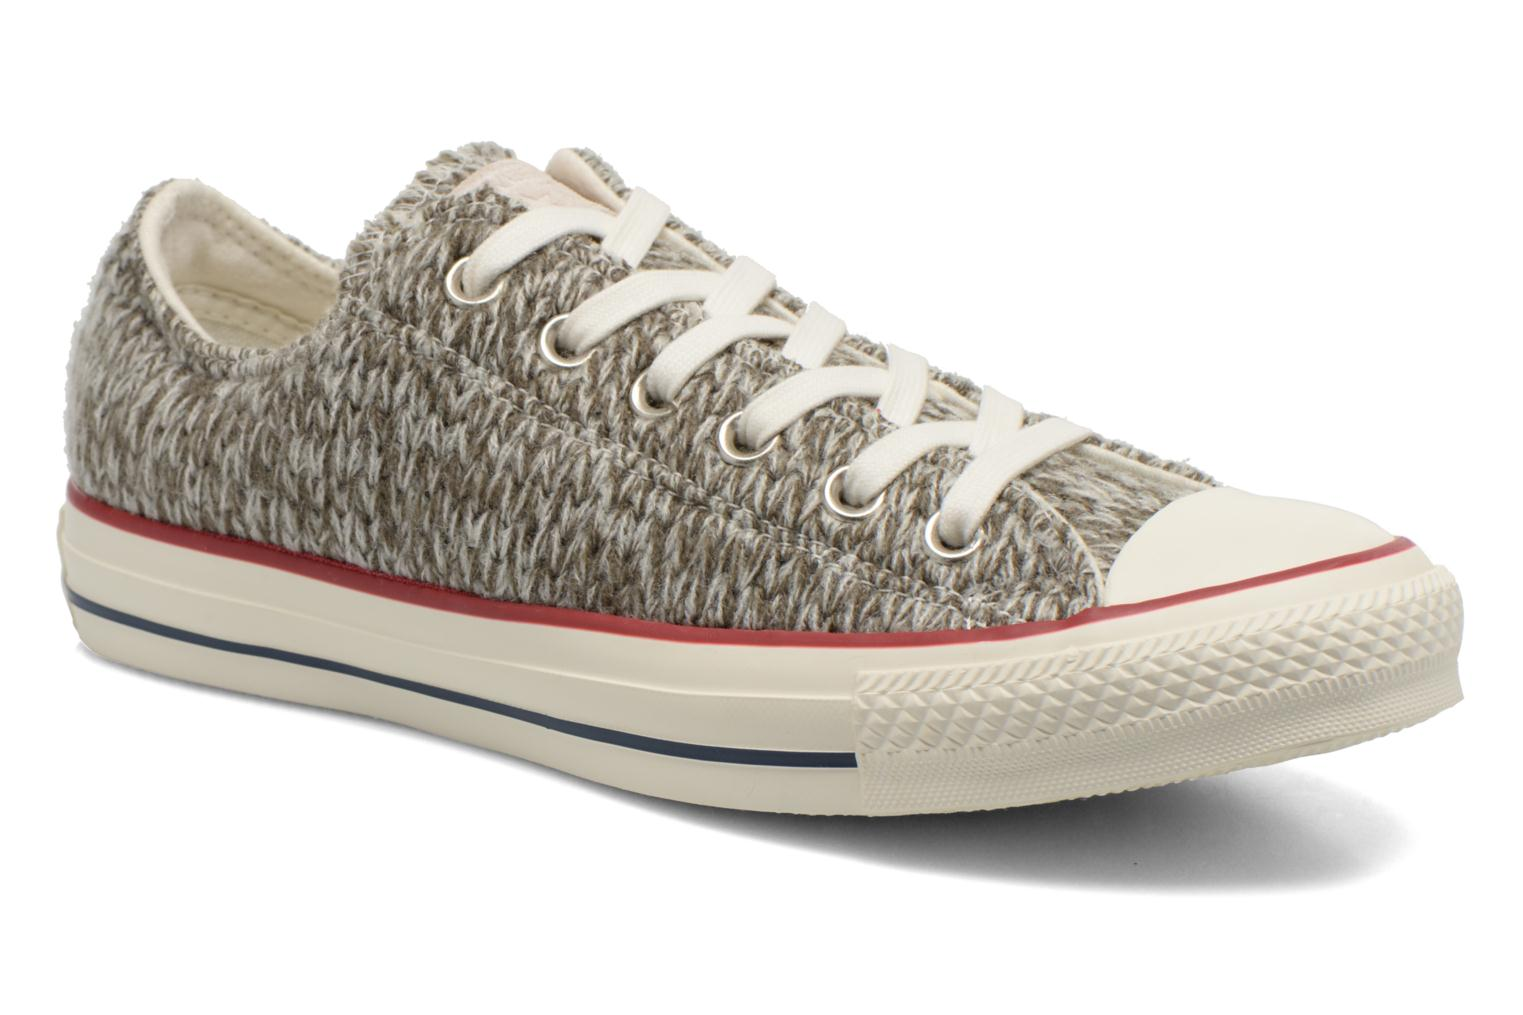 Chuck Taylor All Star Ox Knit W Charcoal/Egret